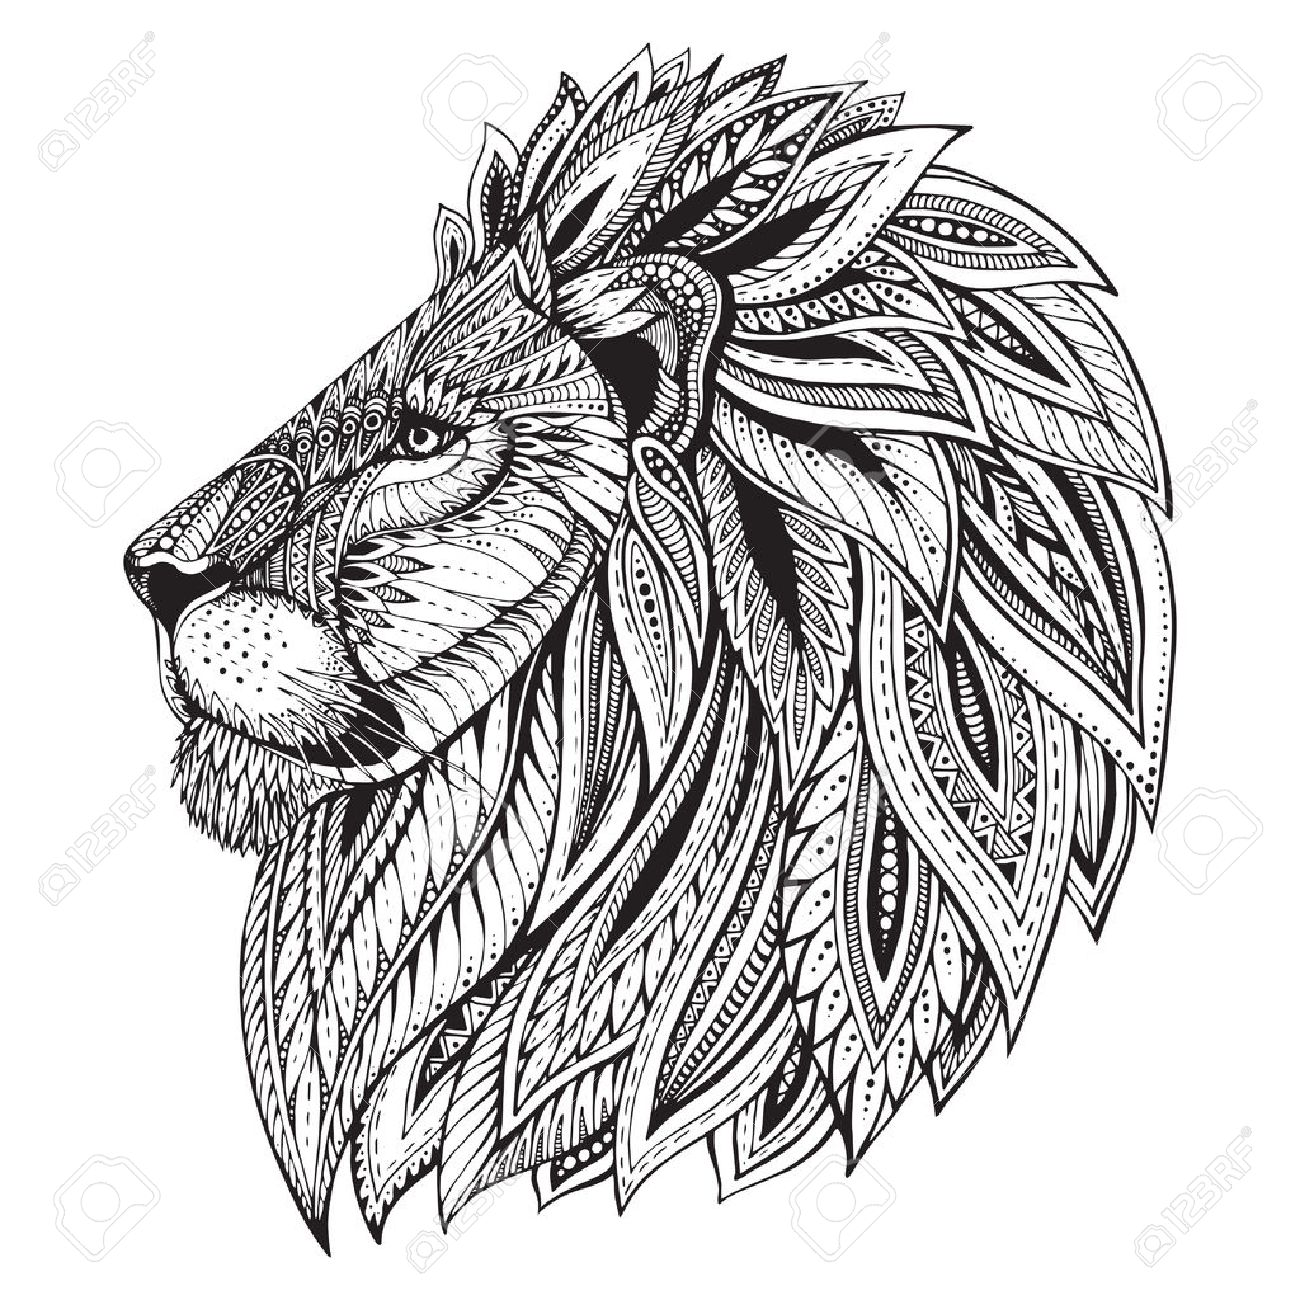 Ethnic patterned ornate head of Lion. Black and white doodle illustration. Sketch for tattoo, poster, print or t-shirt. - 51061654